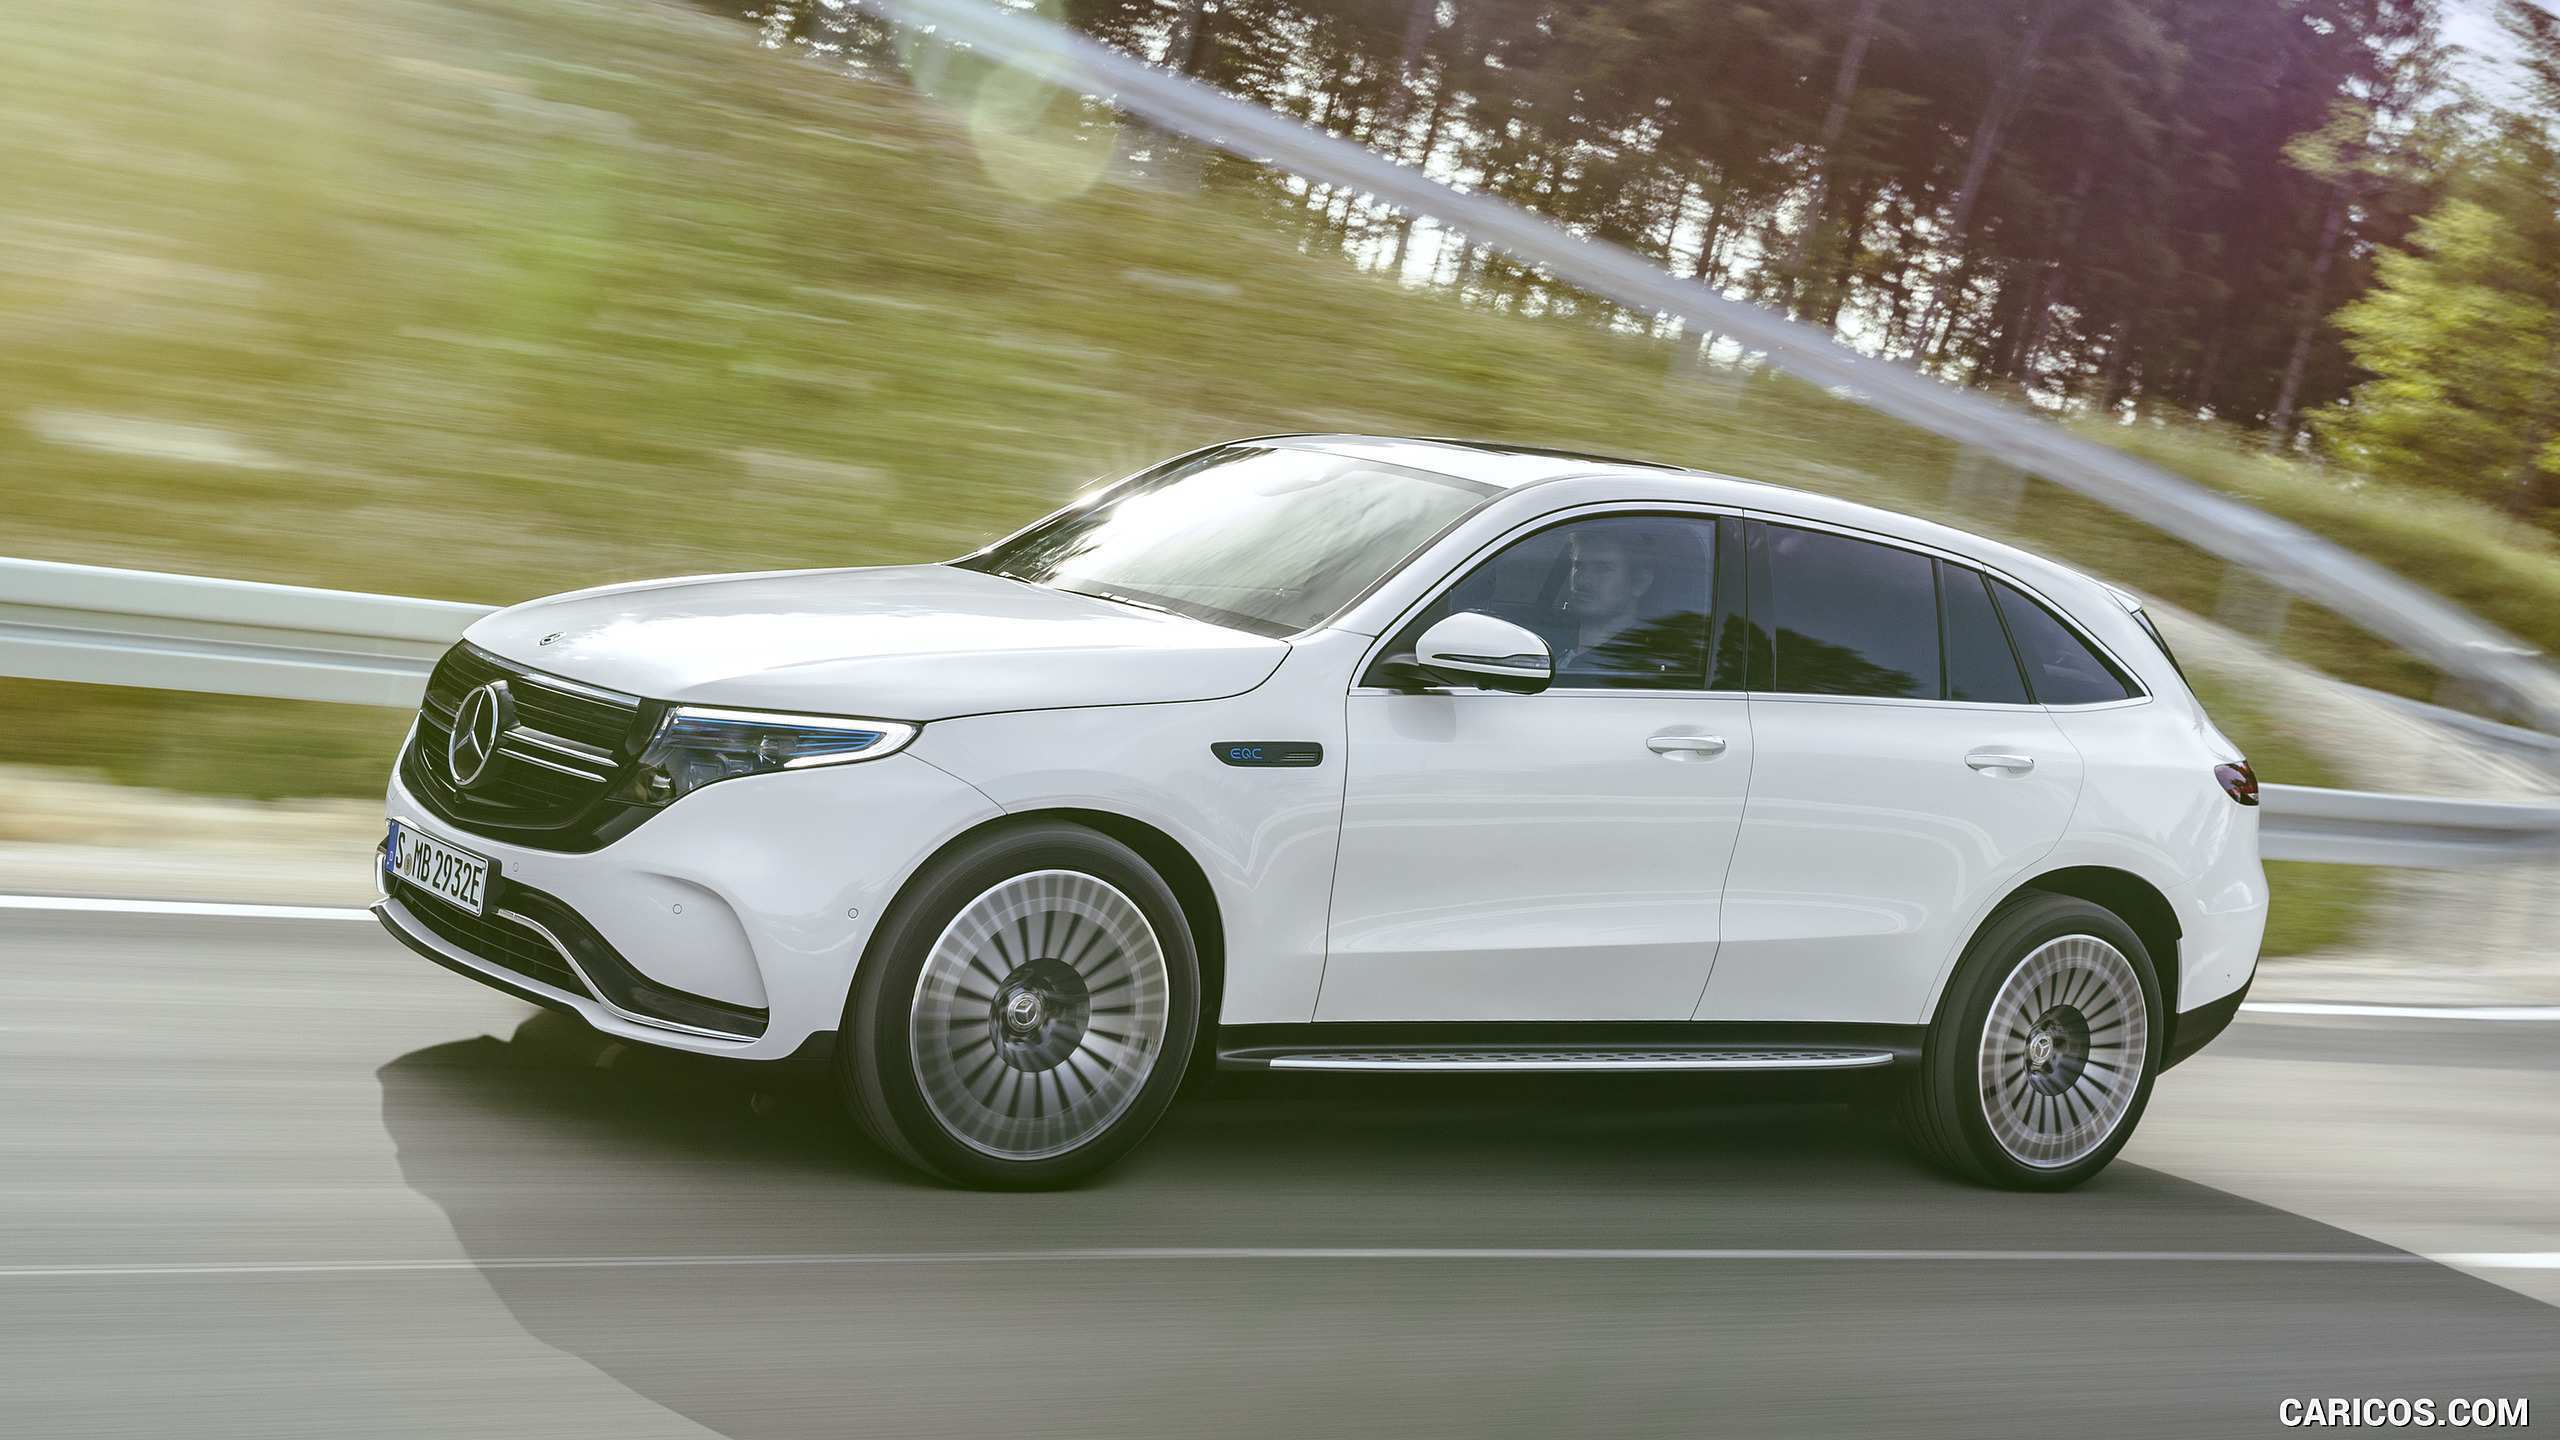 38 New White Mercedes 2020 Pricing by White Mercedes 2020